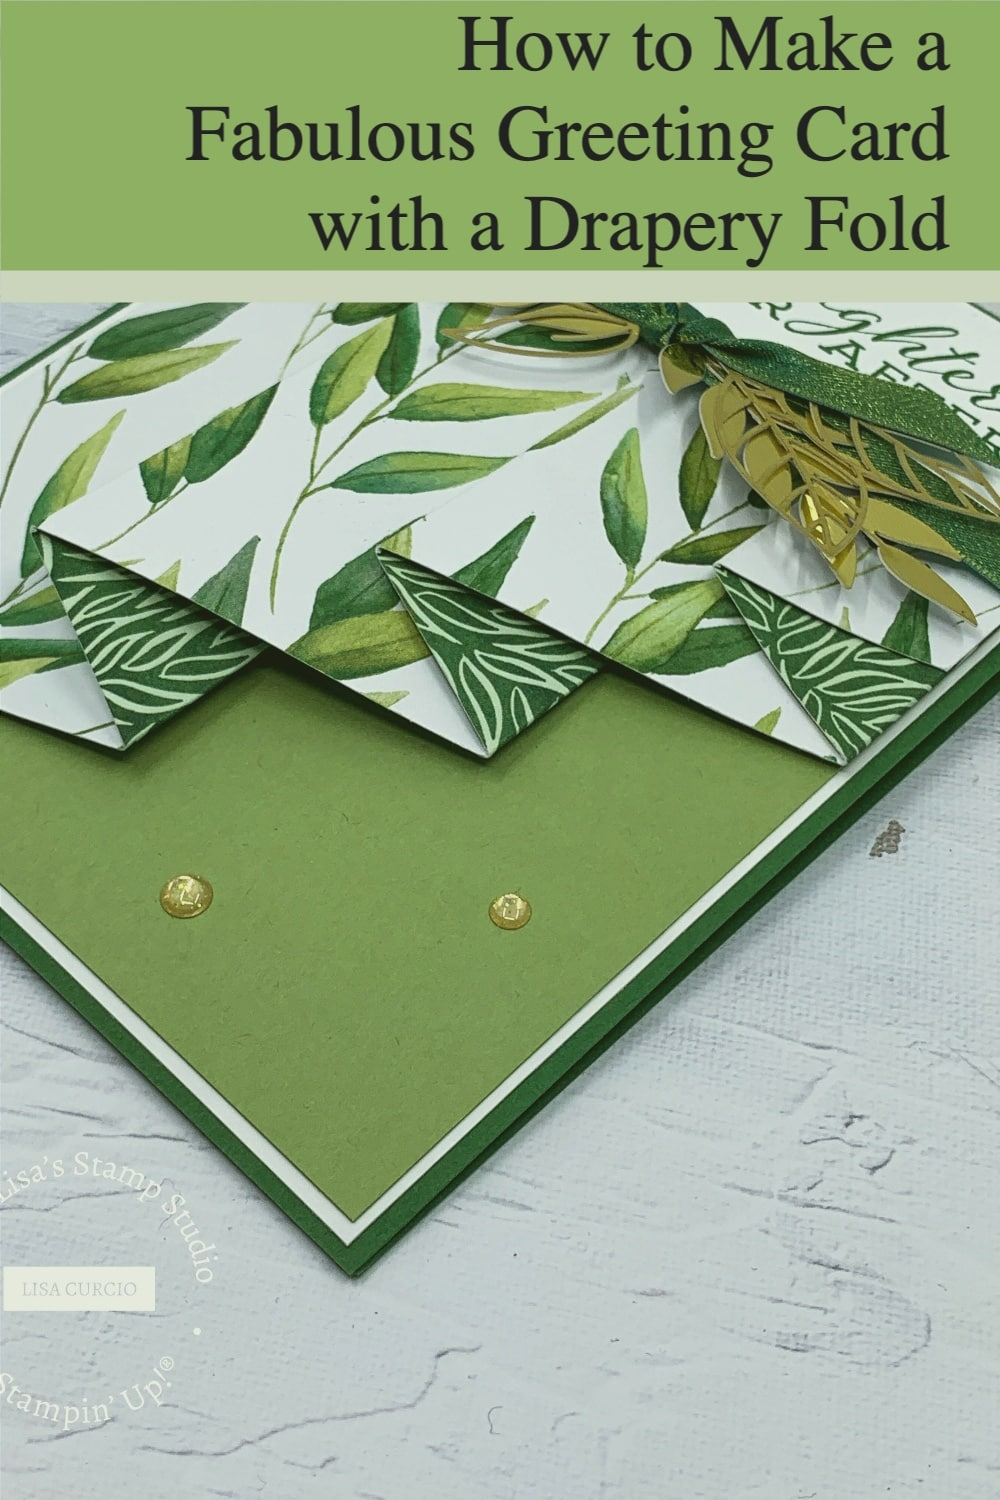 How to make a fabulous greeting card with a drapery fold in easy steps; save it to your pinterest board